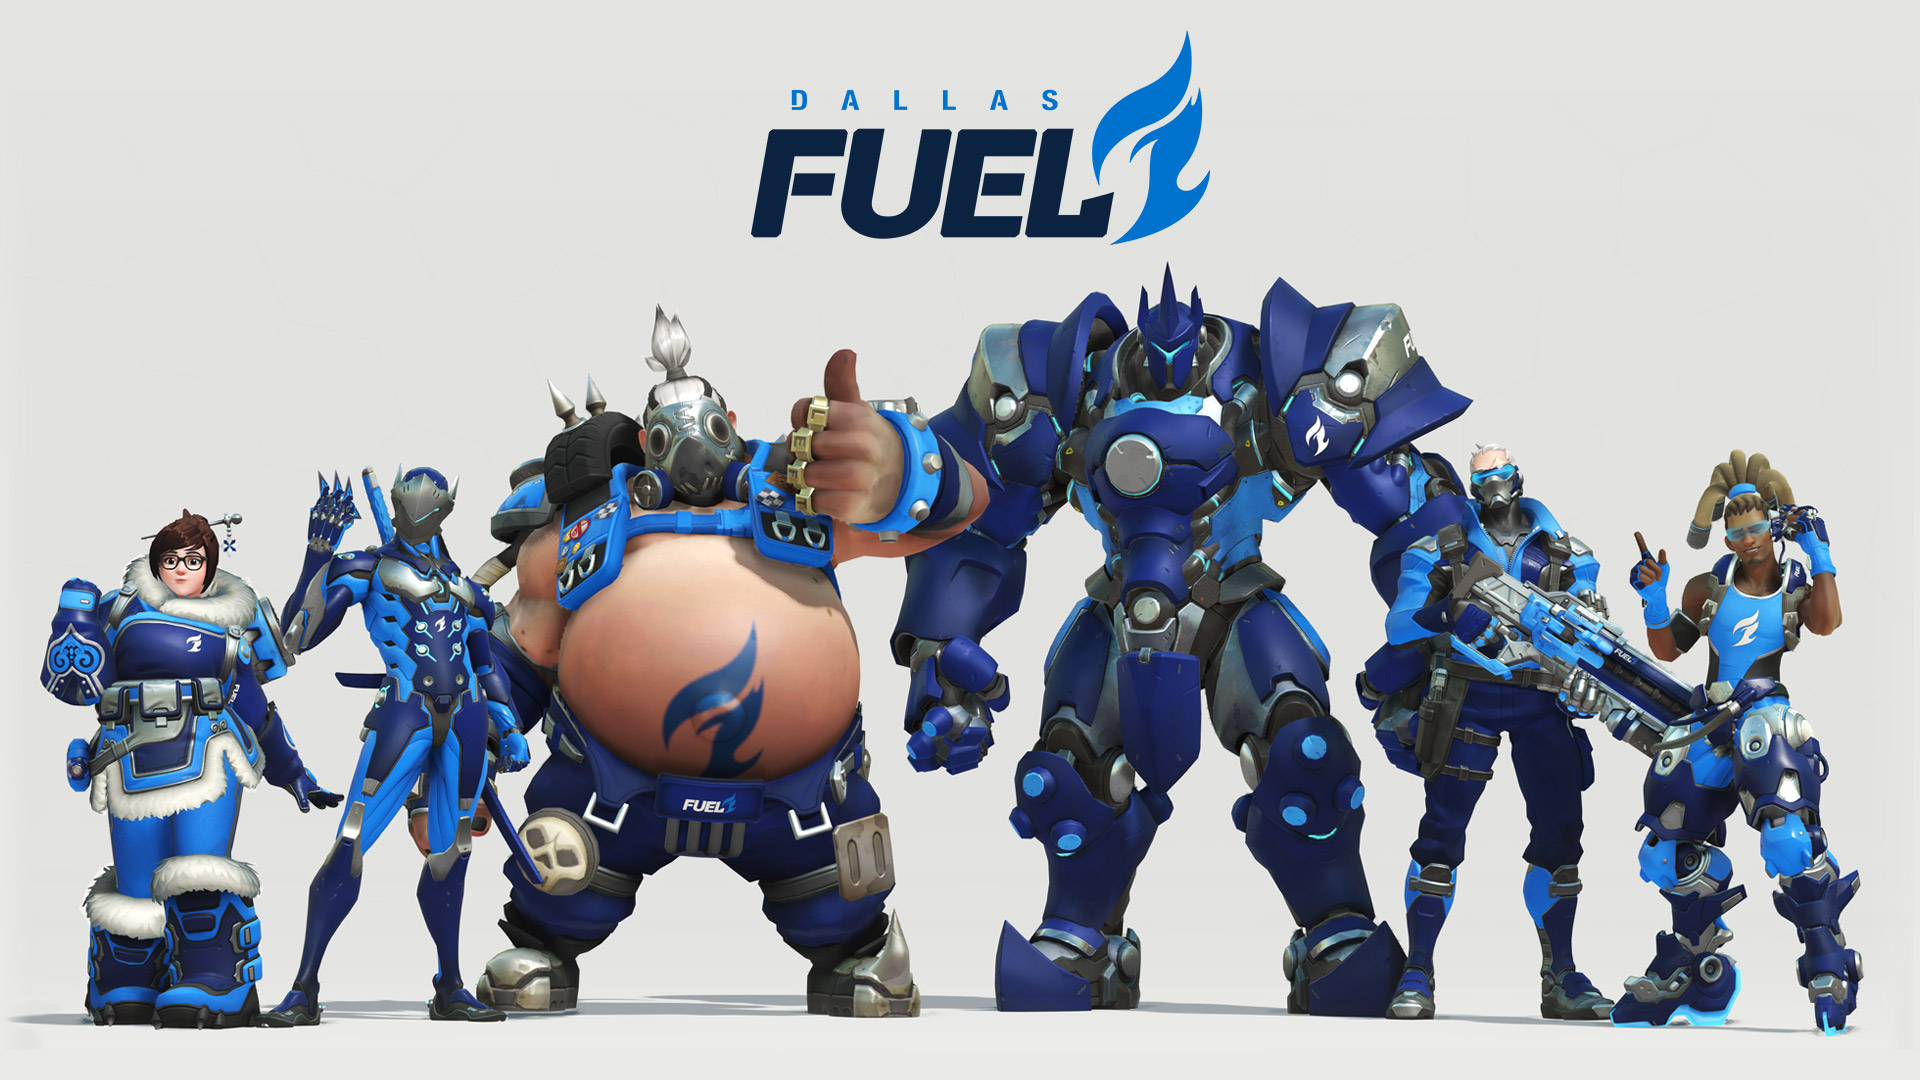 Skin de l'équipe Dallas Fuel pour l'Overwatch League